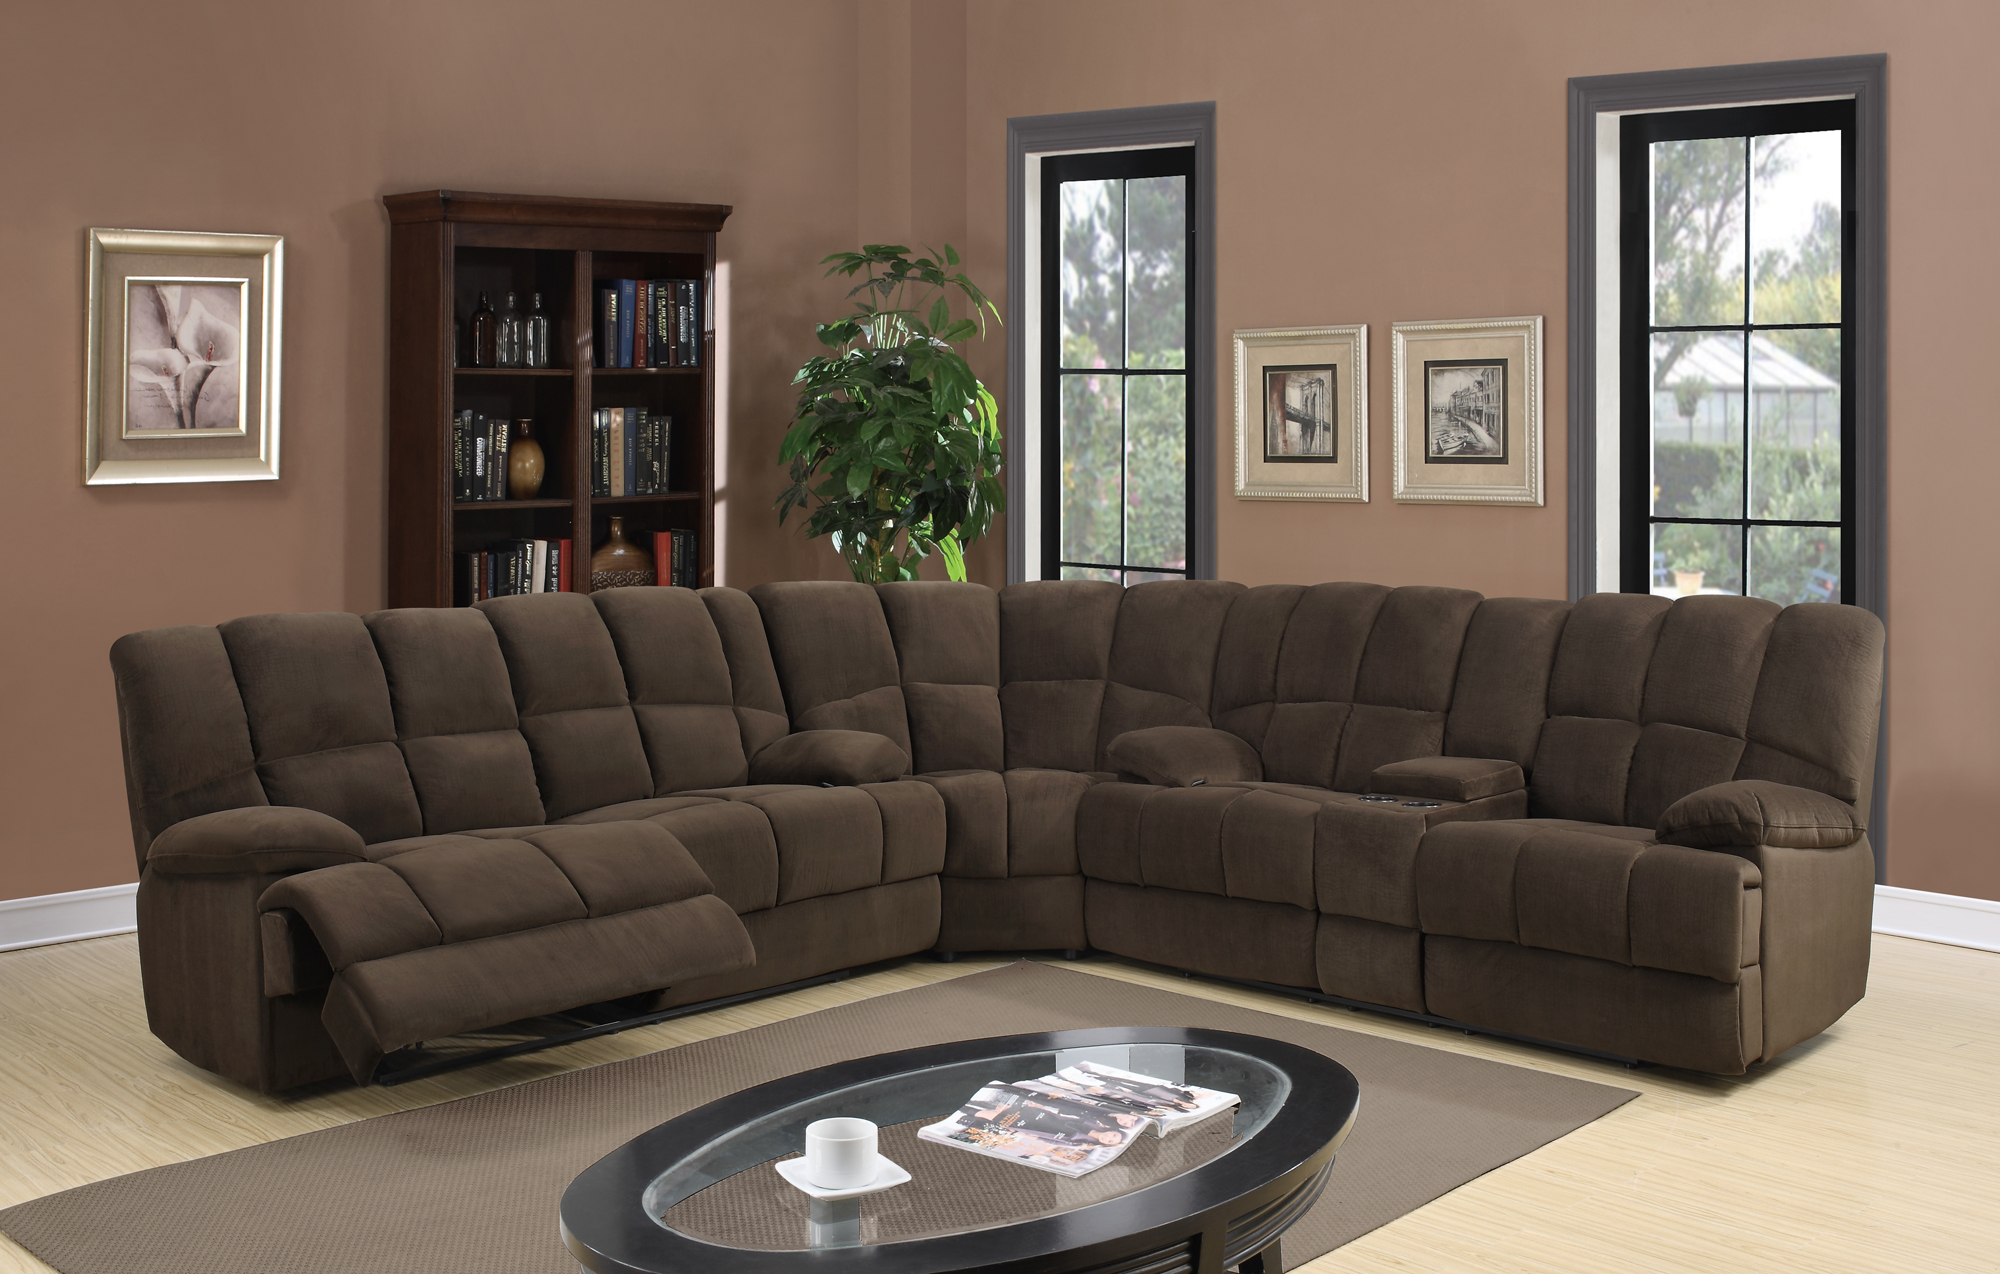 U201 chocolate fabric sectional sofa by global furniture for Sectional sofa names